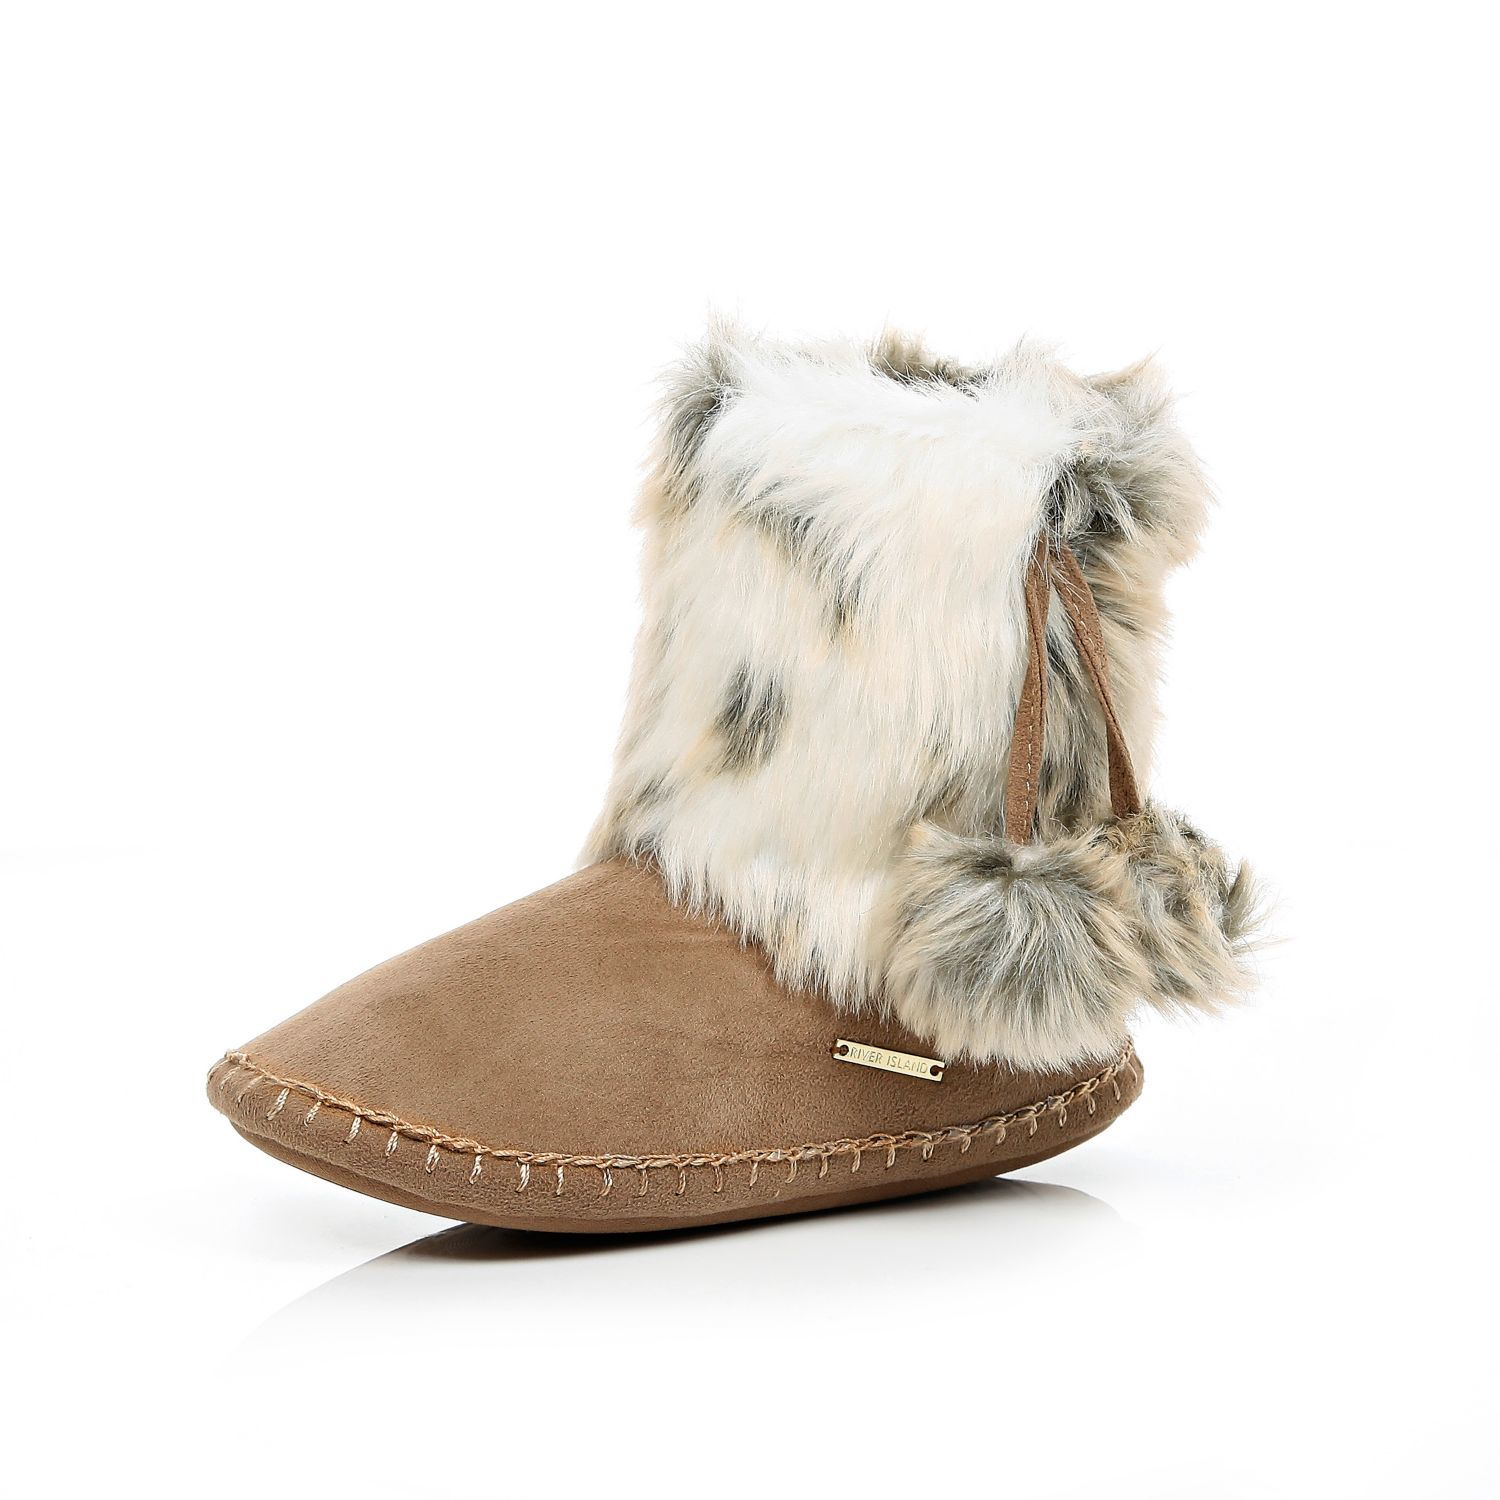 0cf310305 River Island Brown Faux Fur Slipper Boots in Brown - Lyst